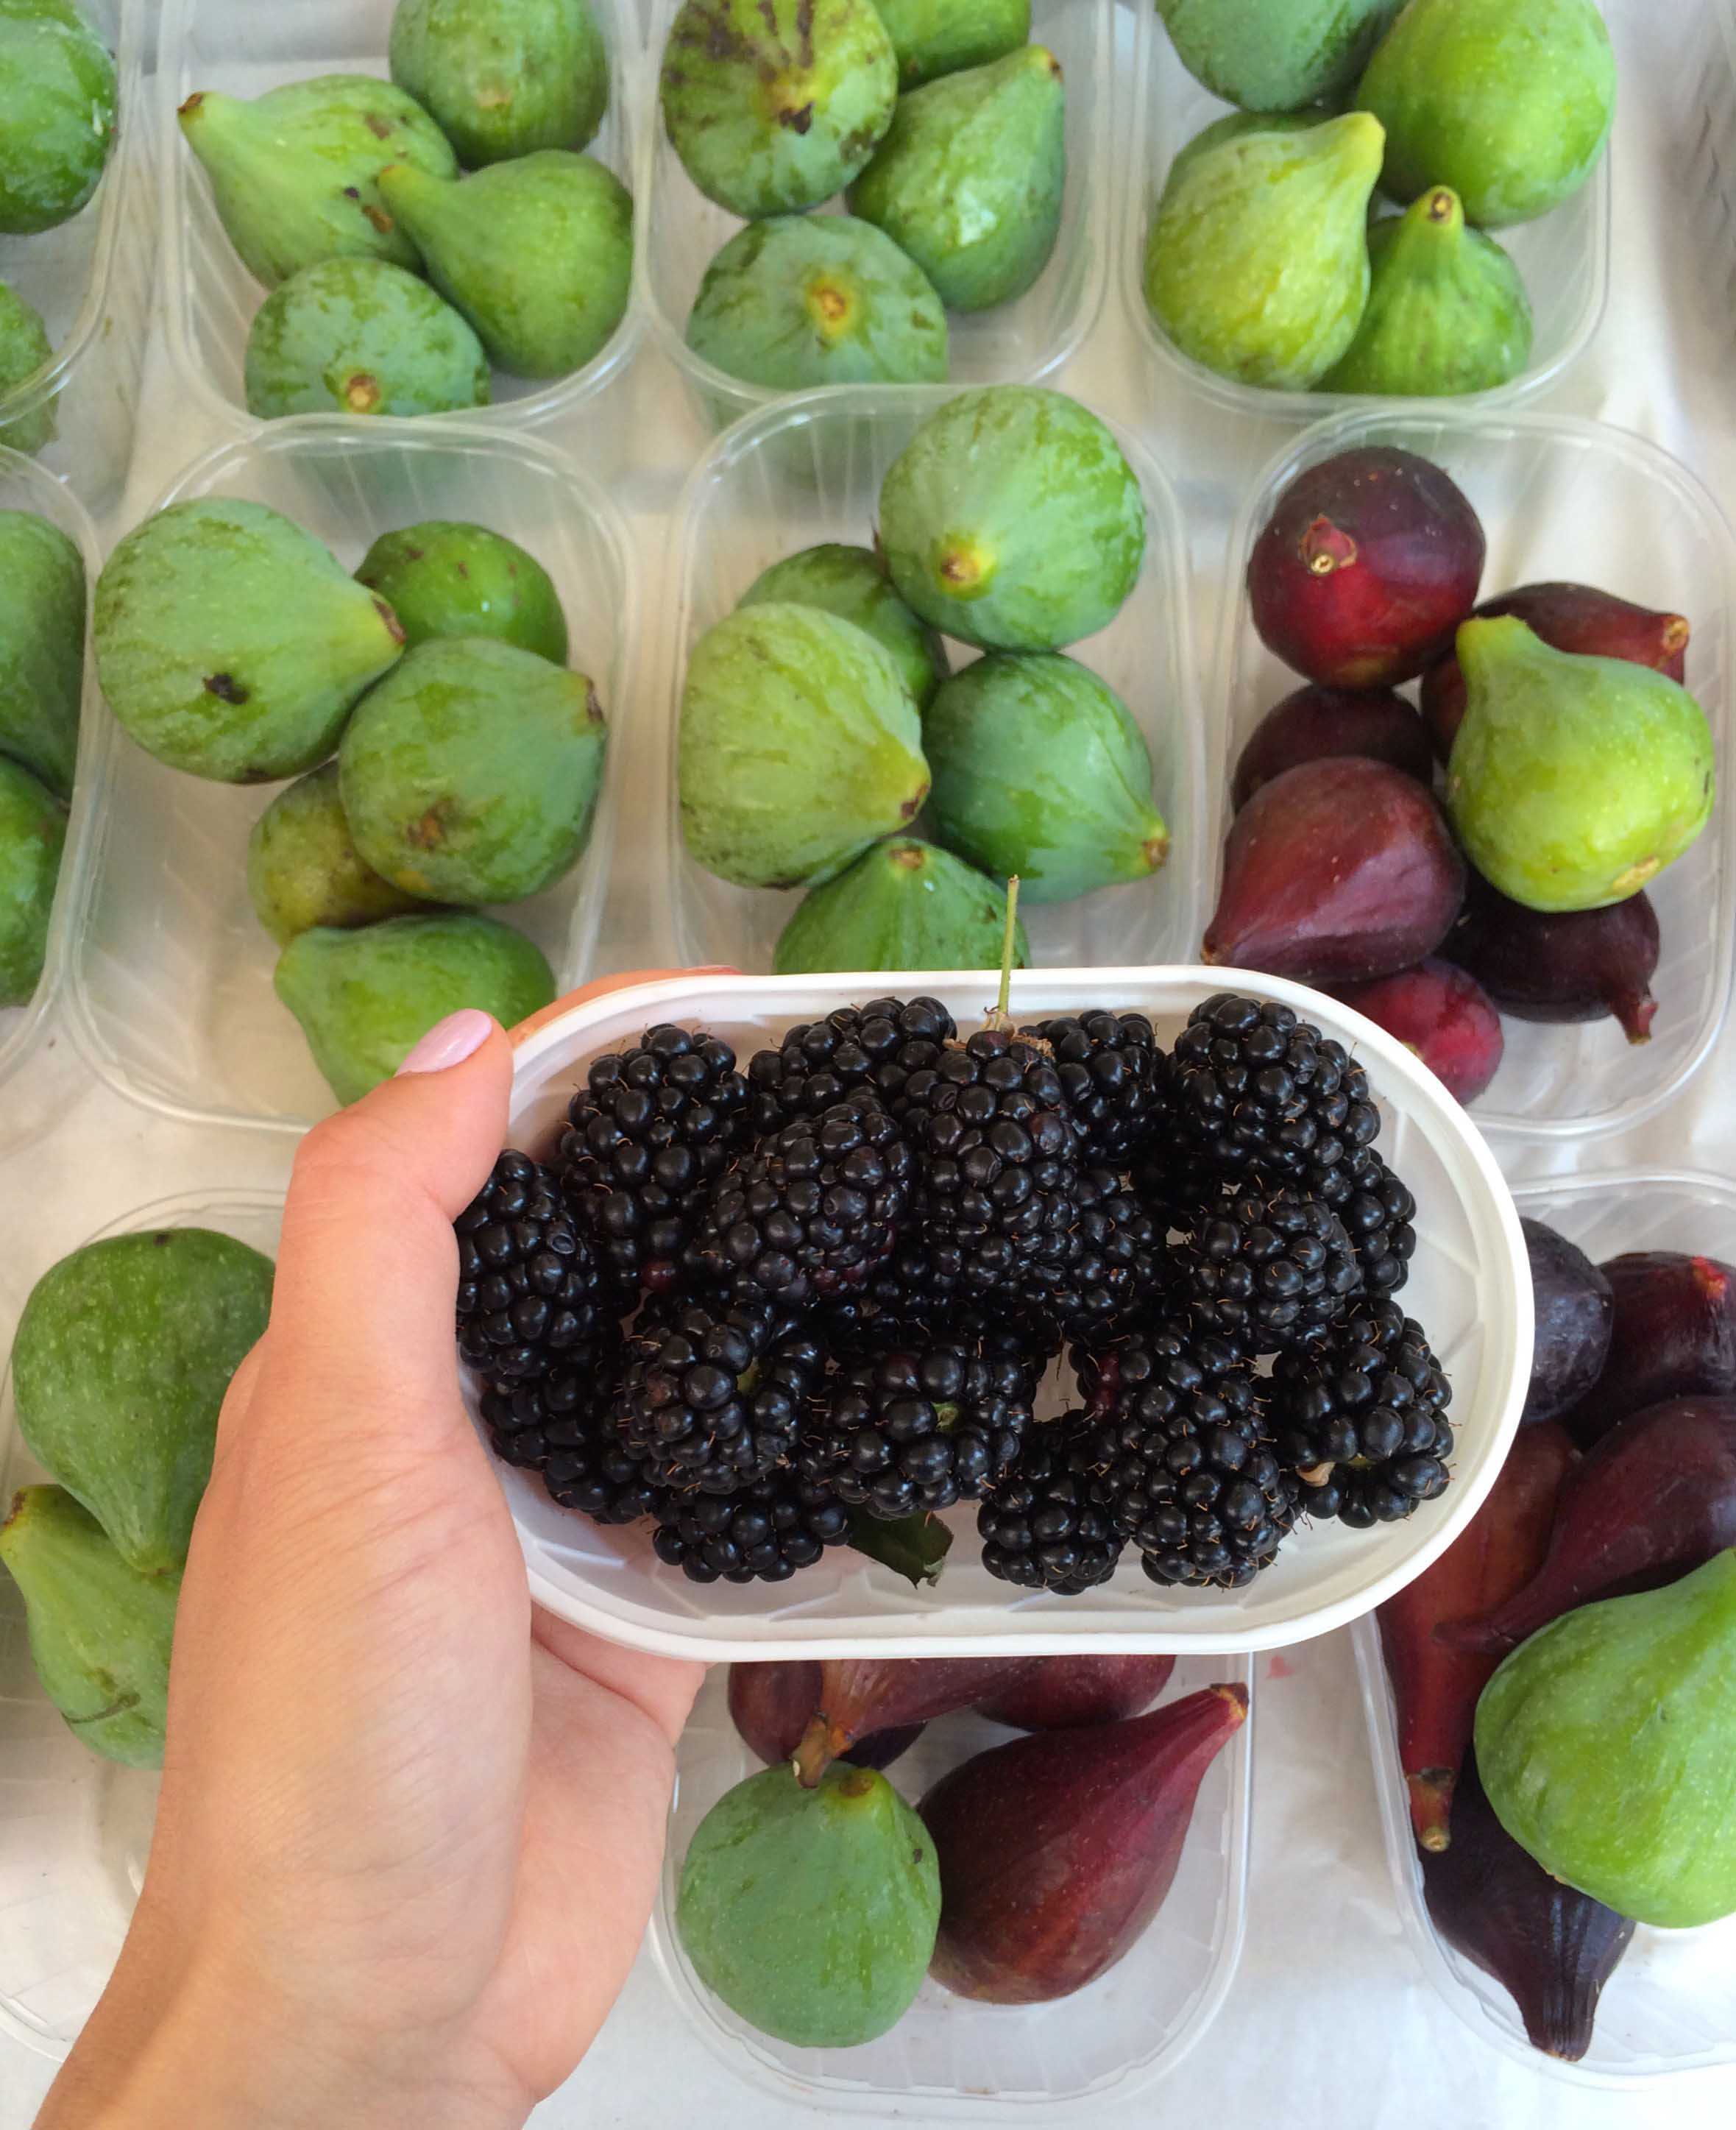 Luscious fruit at the farmer's market. Juicy blackberries and the best figs I've ever tasted.